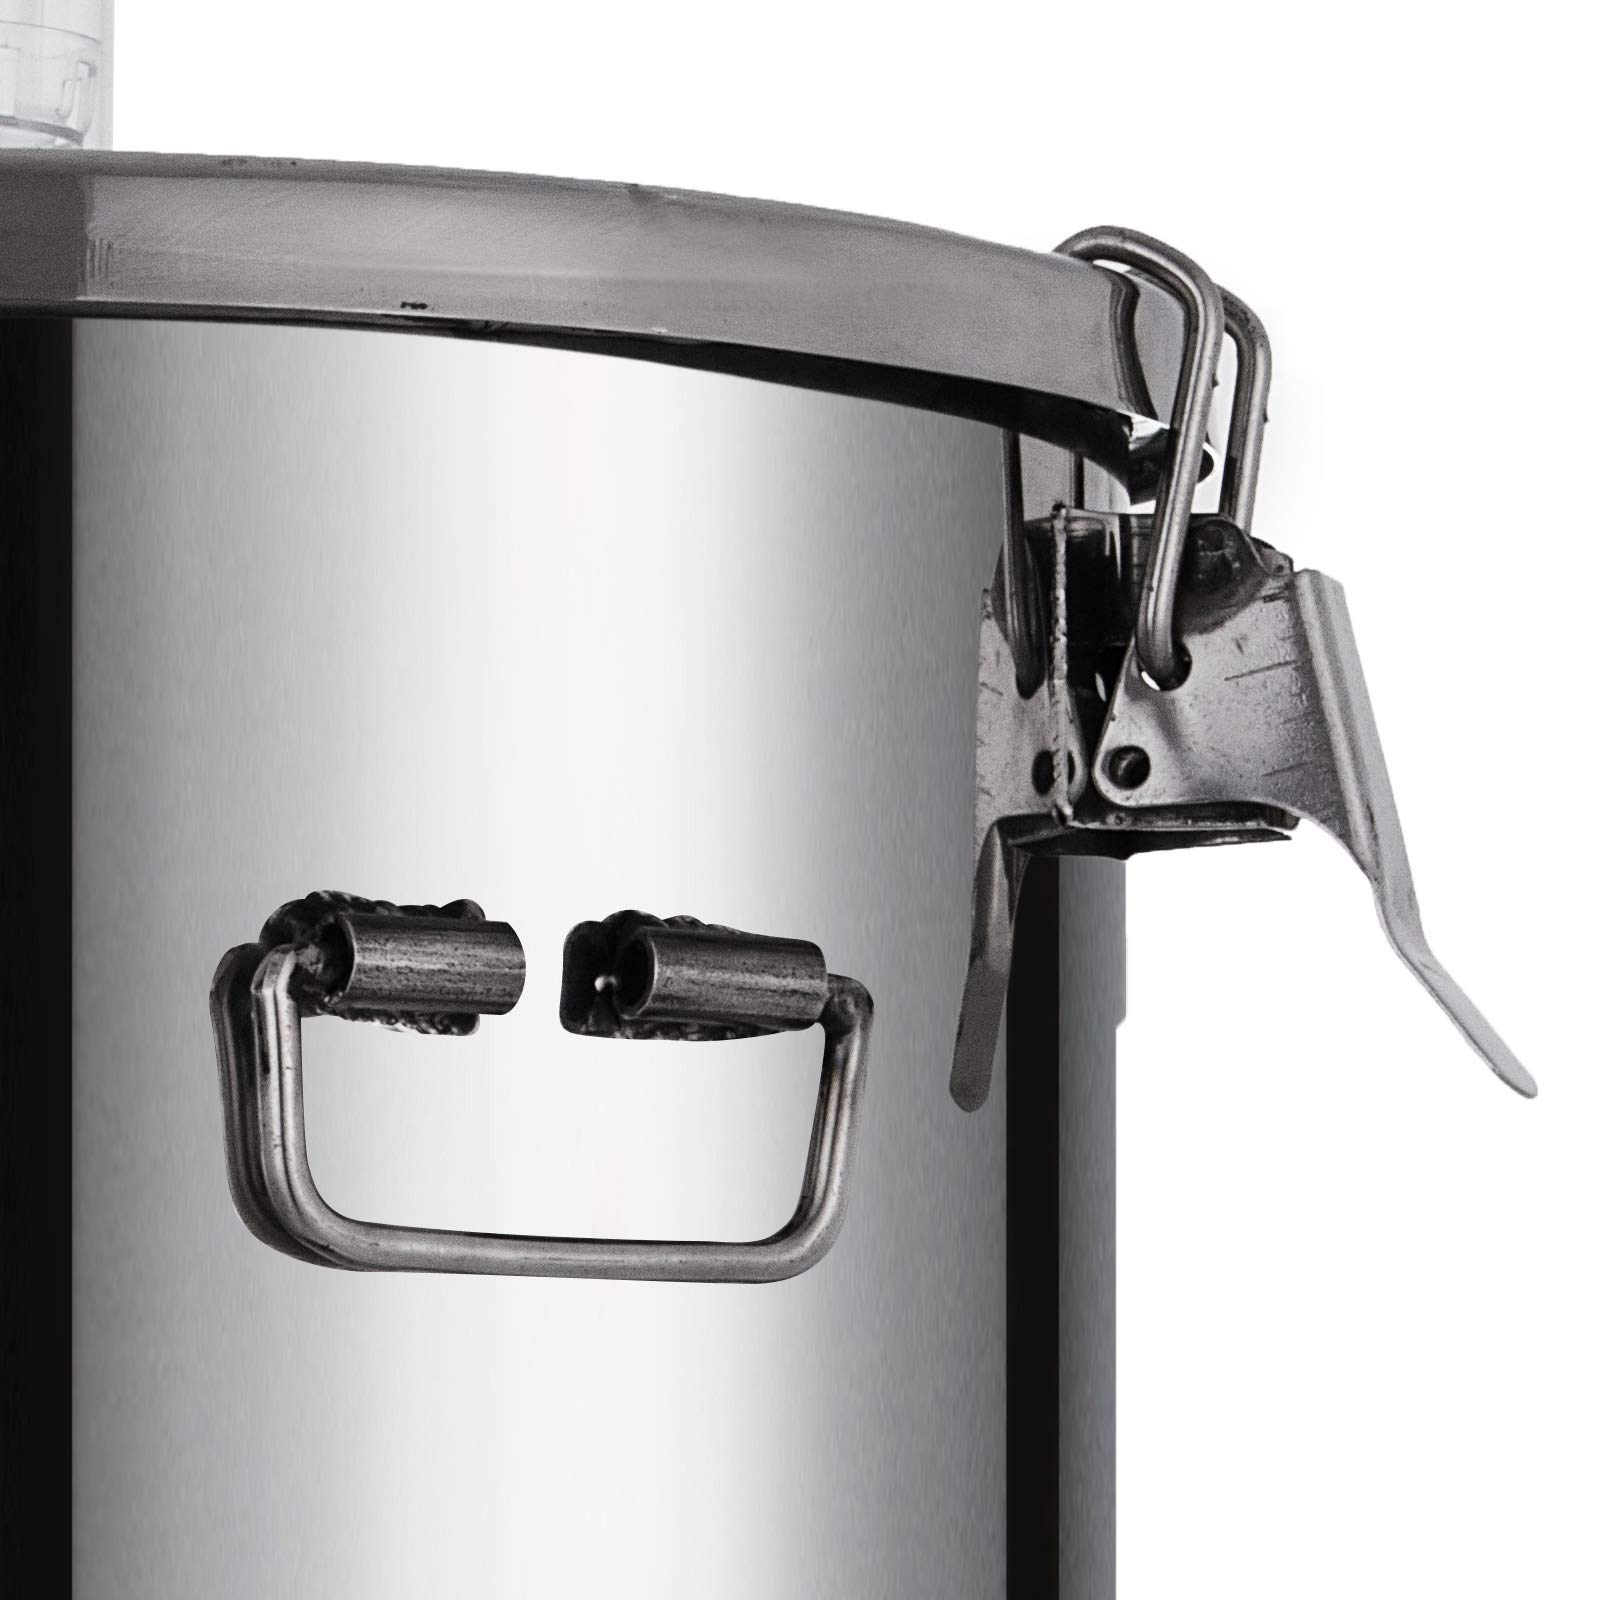 VEVOR 7 Gallon Stainless Steel Brew Fermenter Home Brewing Brew Bucket Fermenter With conical base Brewing Equipment by VEVOR (Image #8)